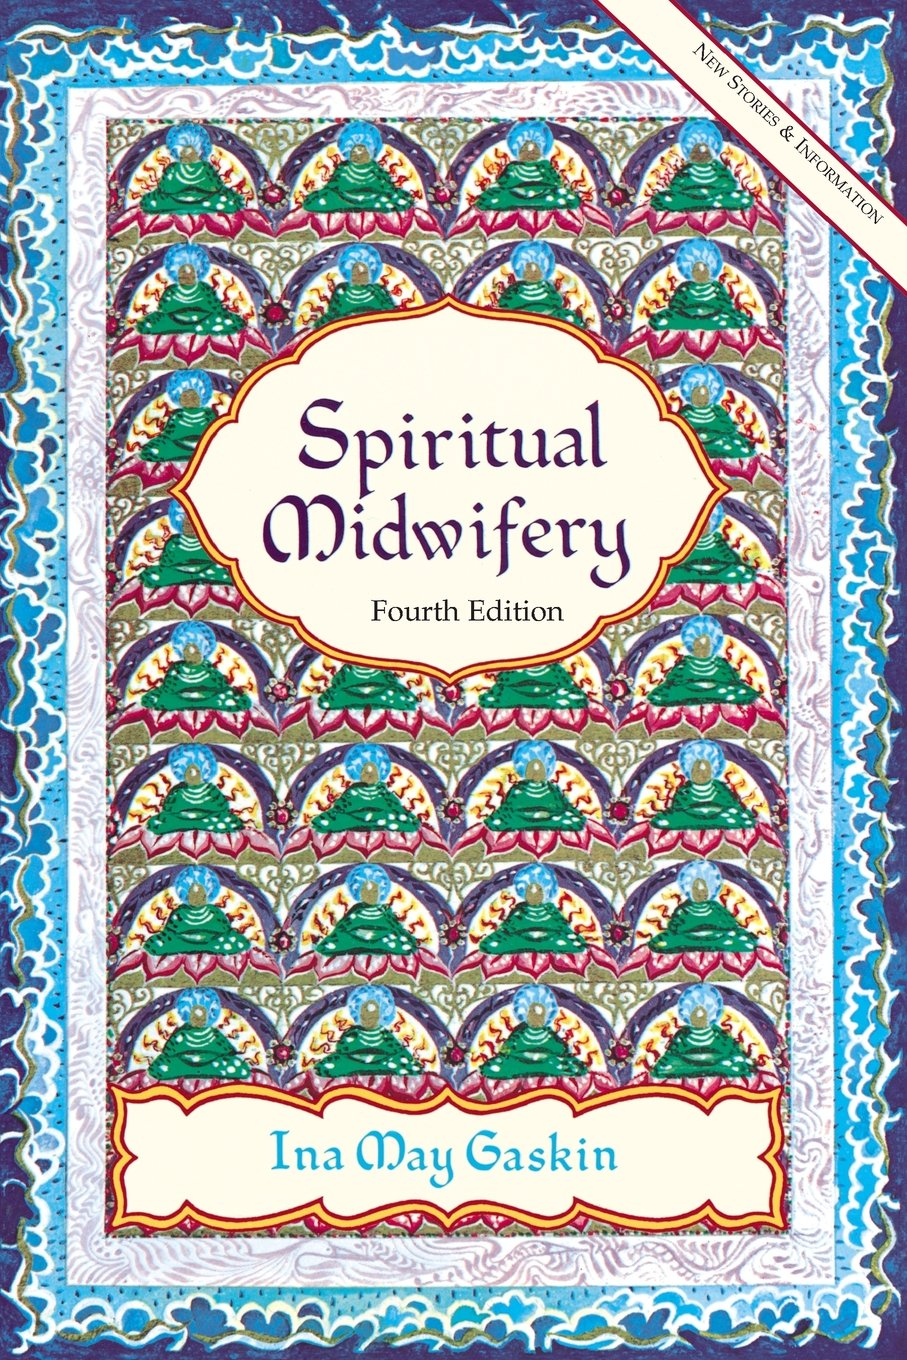 Spiritual Midwifery by Brand: Healthy Living Publications